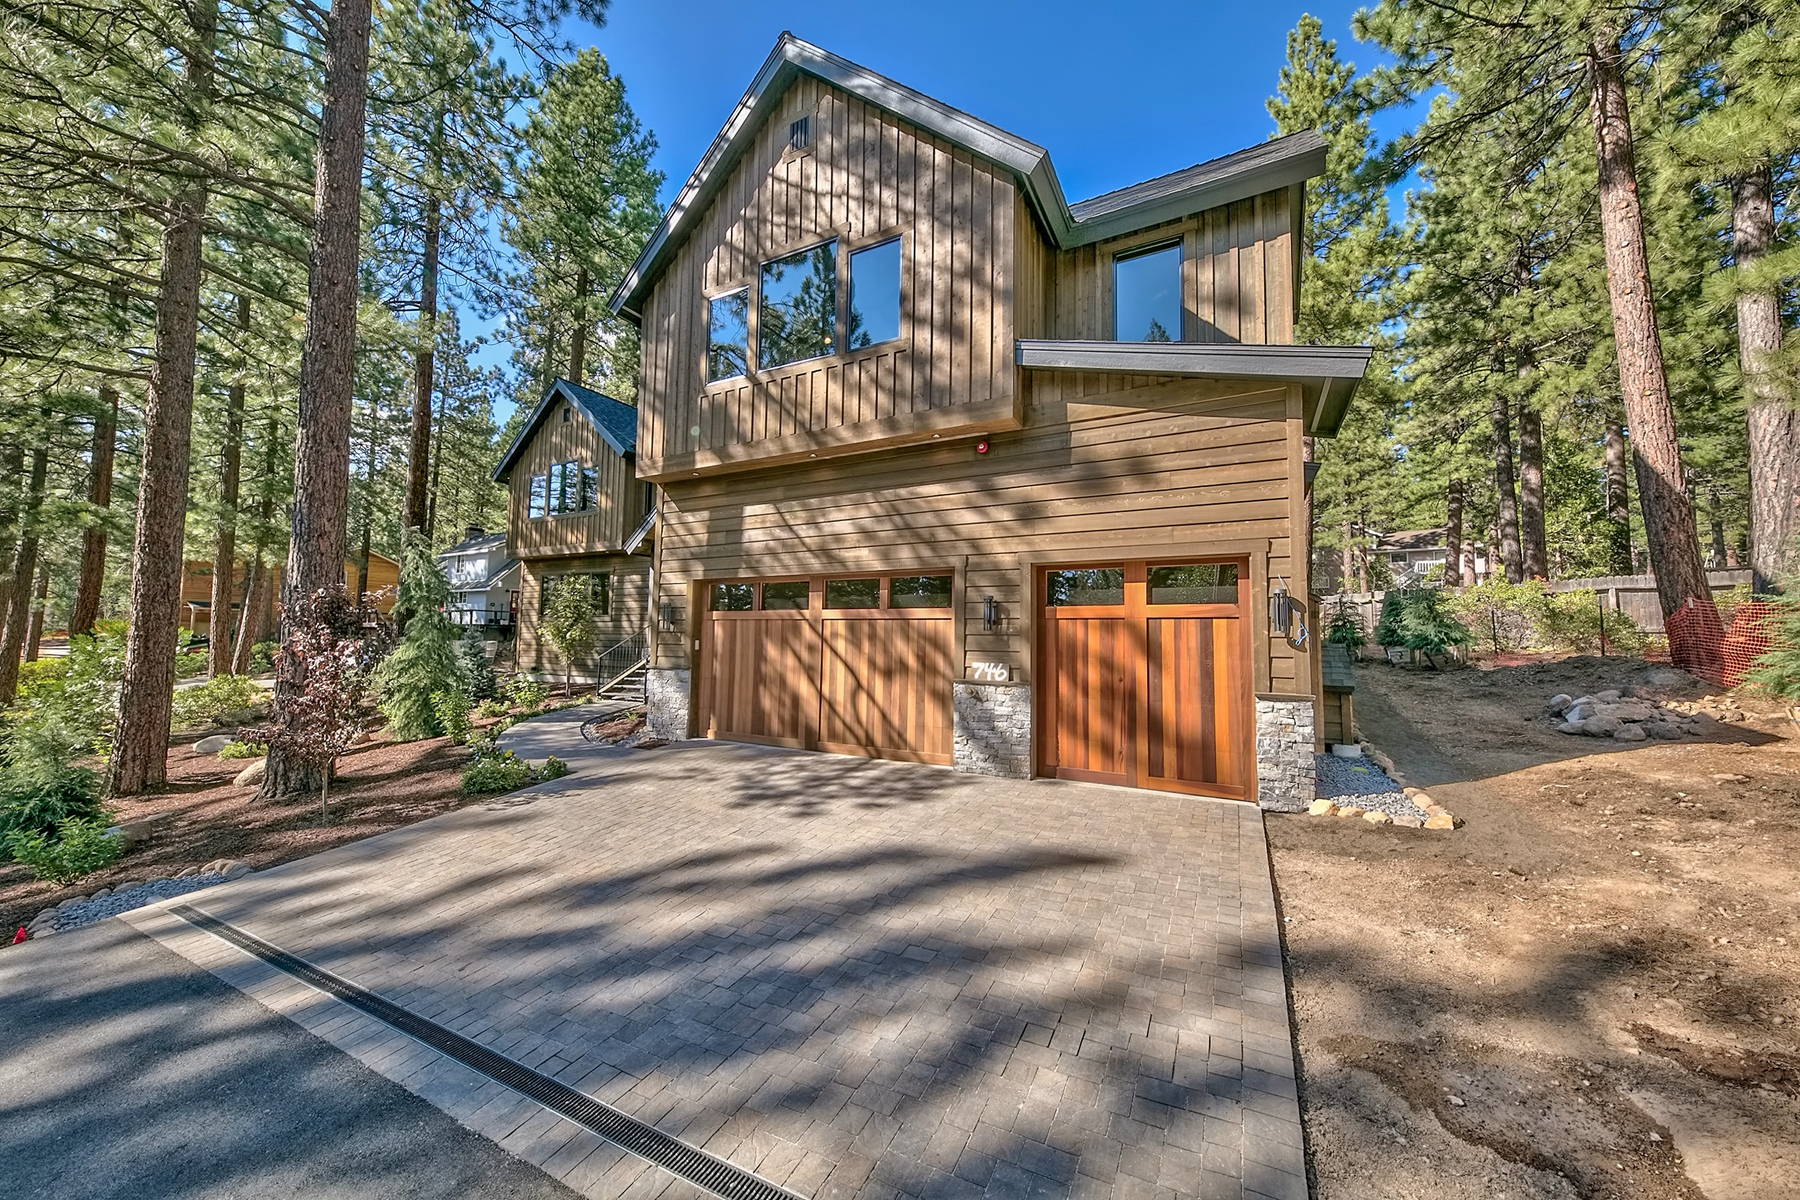 Single Family Home for Active at 746 Kelly Drive, Incline Village, Nevada 746 Kelly Drive Incline Village, Nevada 89451 United States